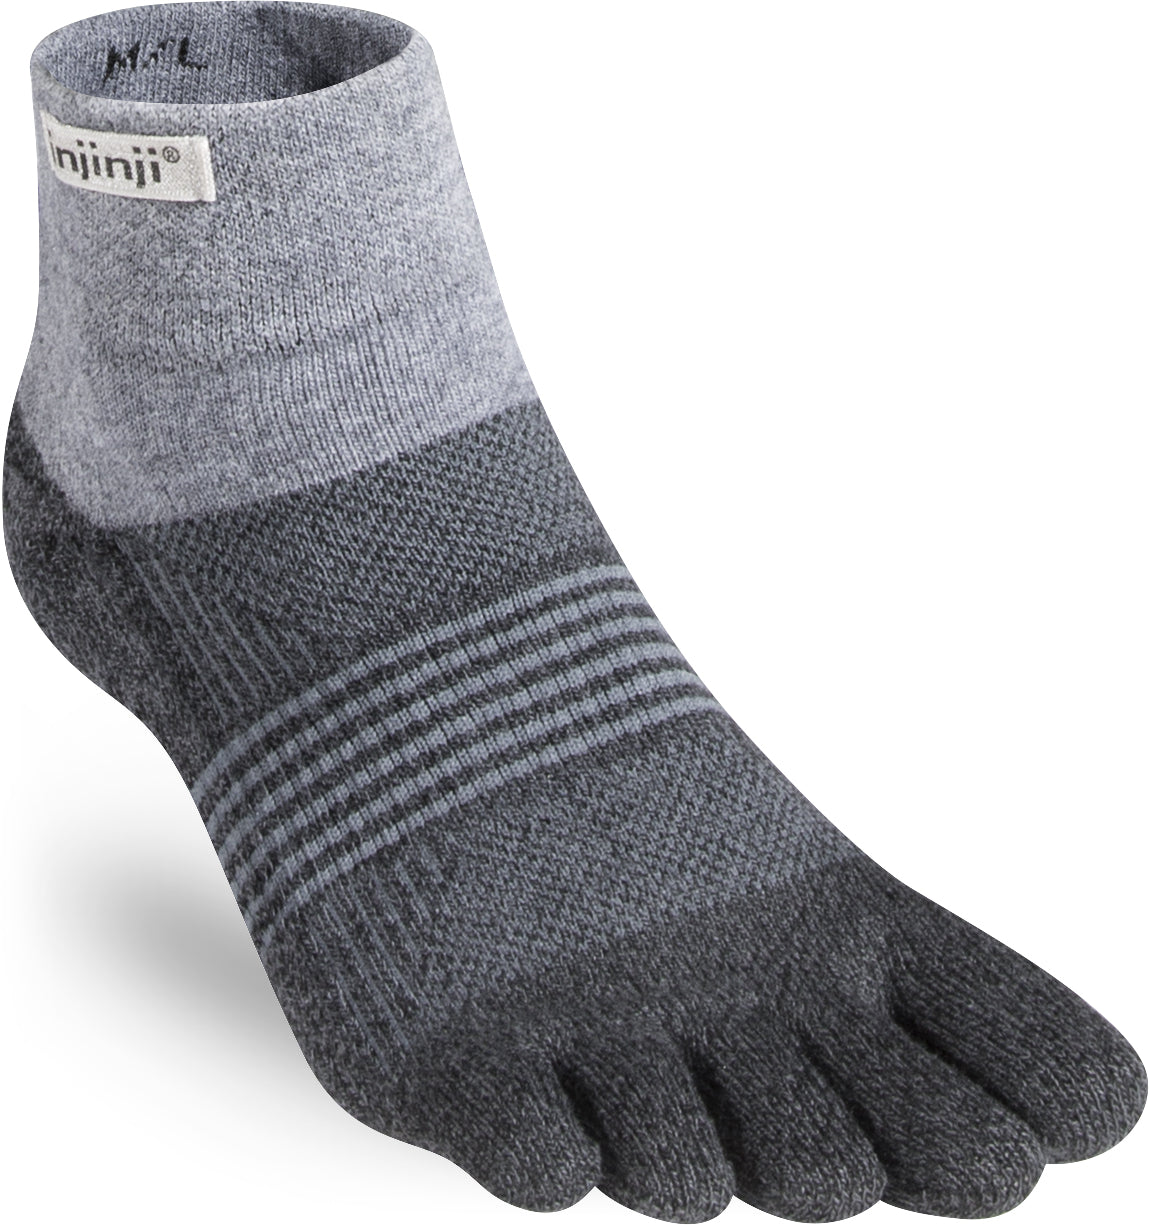 Injinji TRAIL Women's Mini Crew - Granite